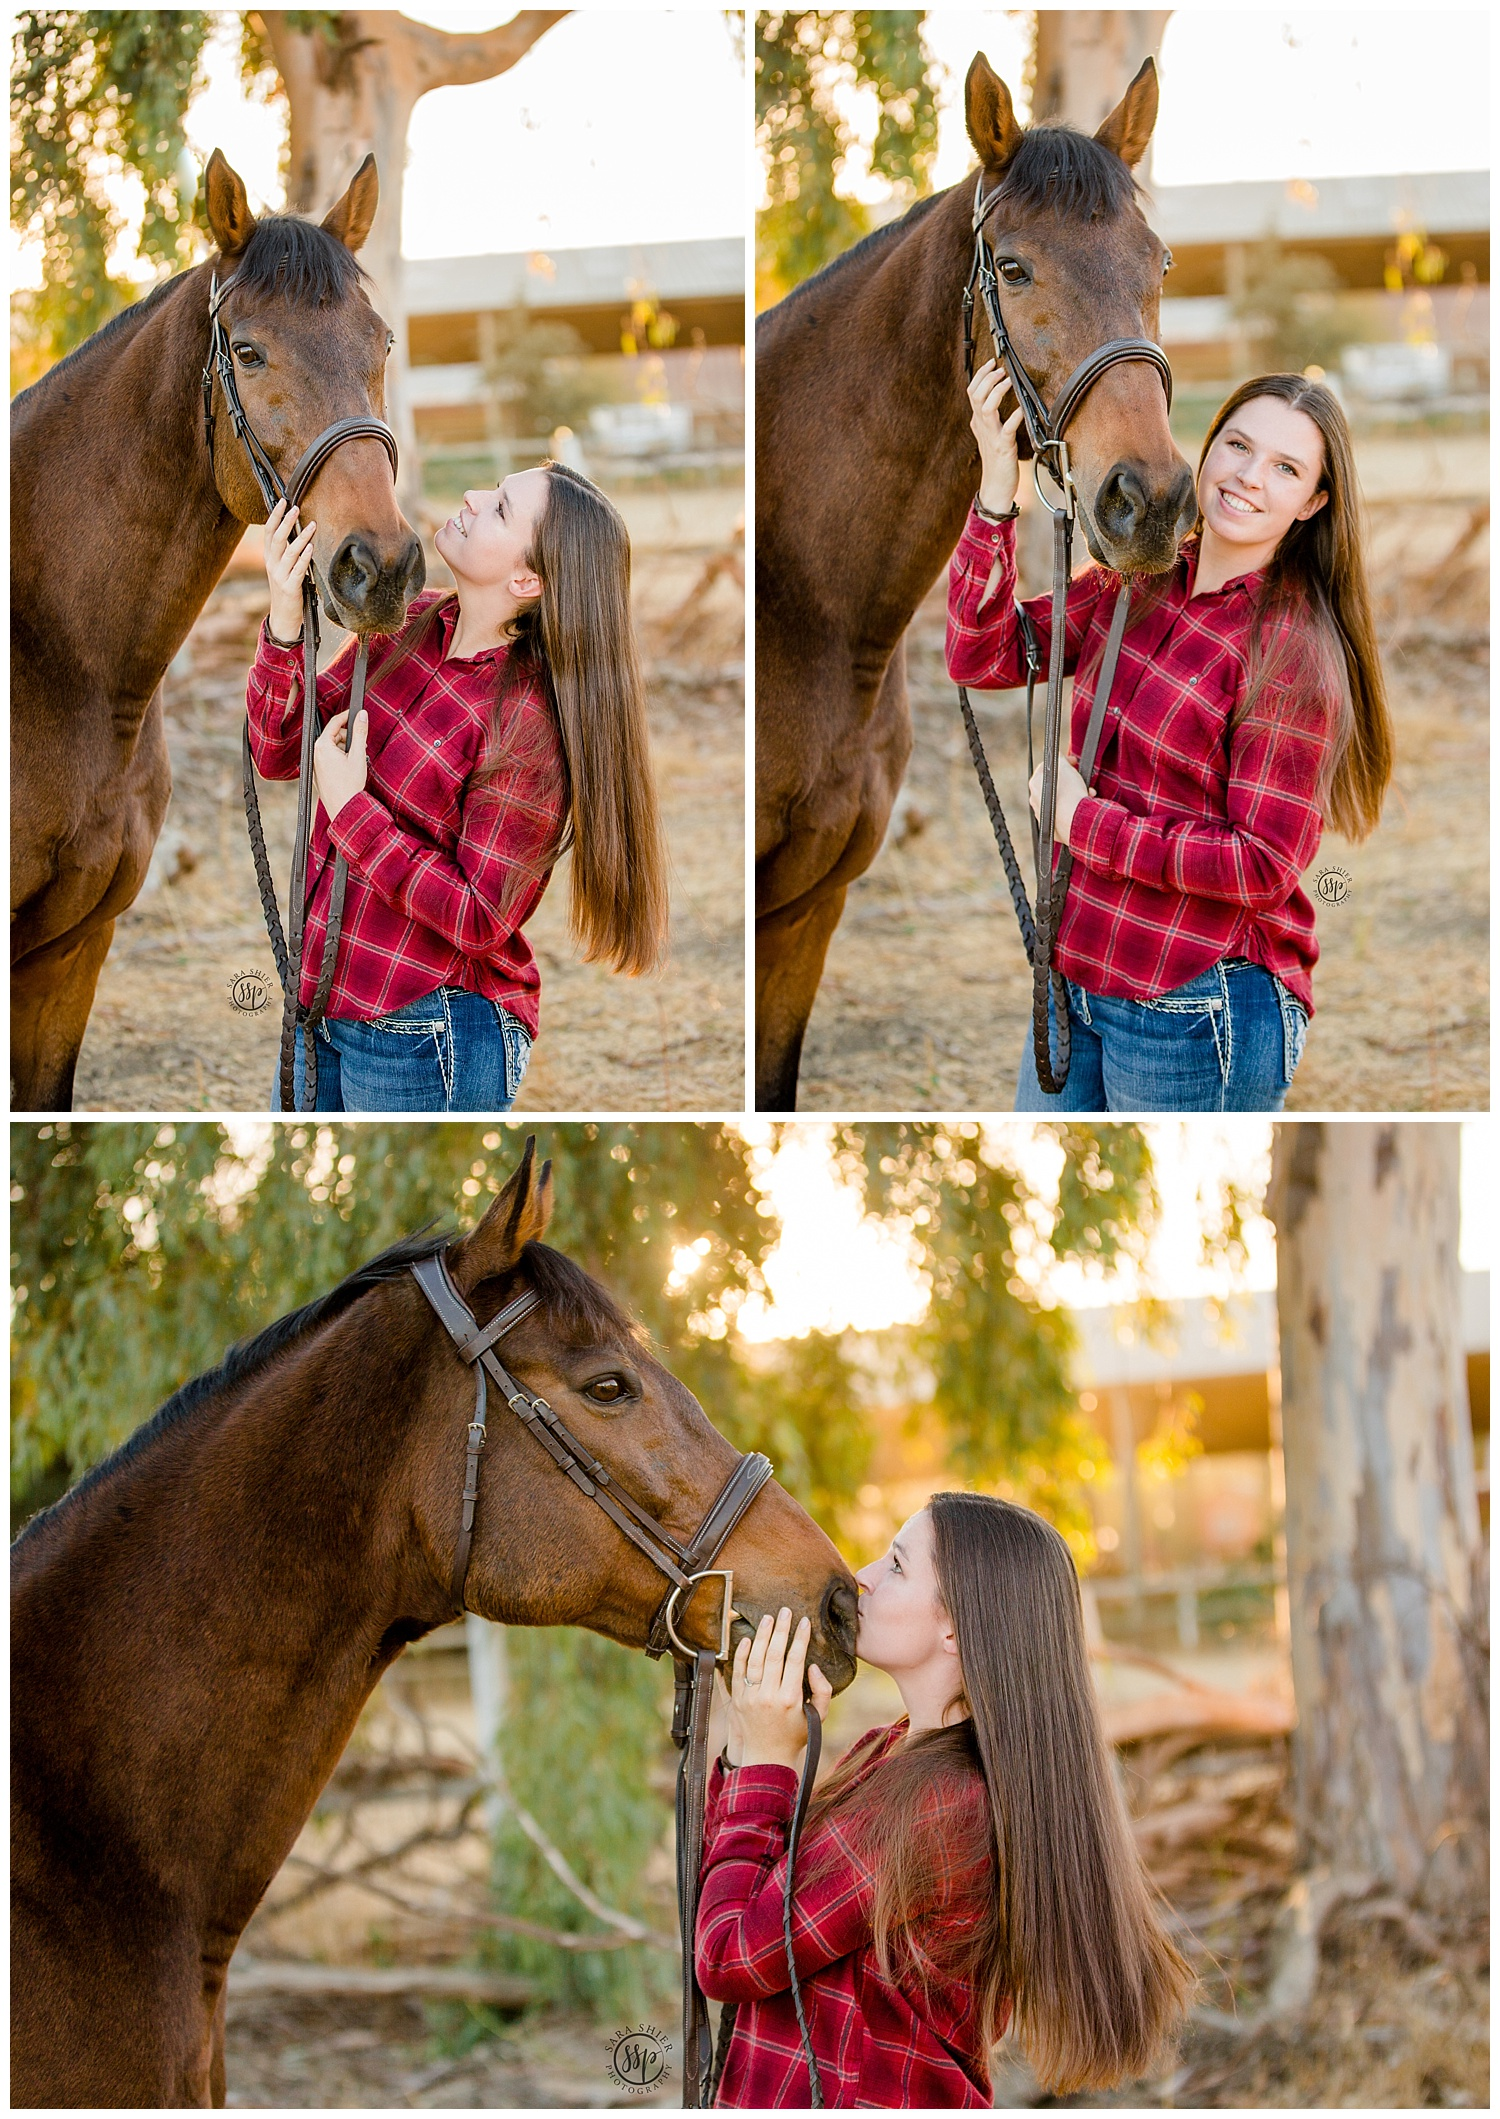 Black Background Horse Rider Equine Photographer Southern California Sara Shier Photography SoCal Equestrian Cowgirl_0045.jpg